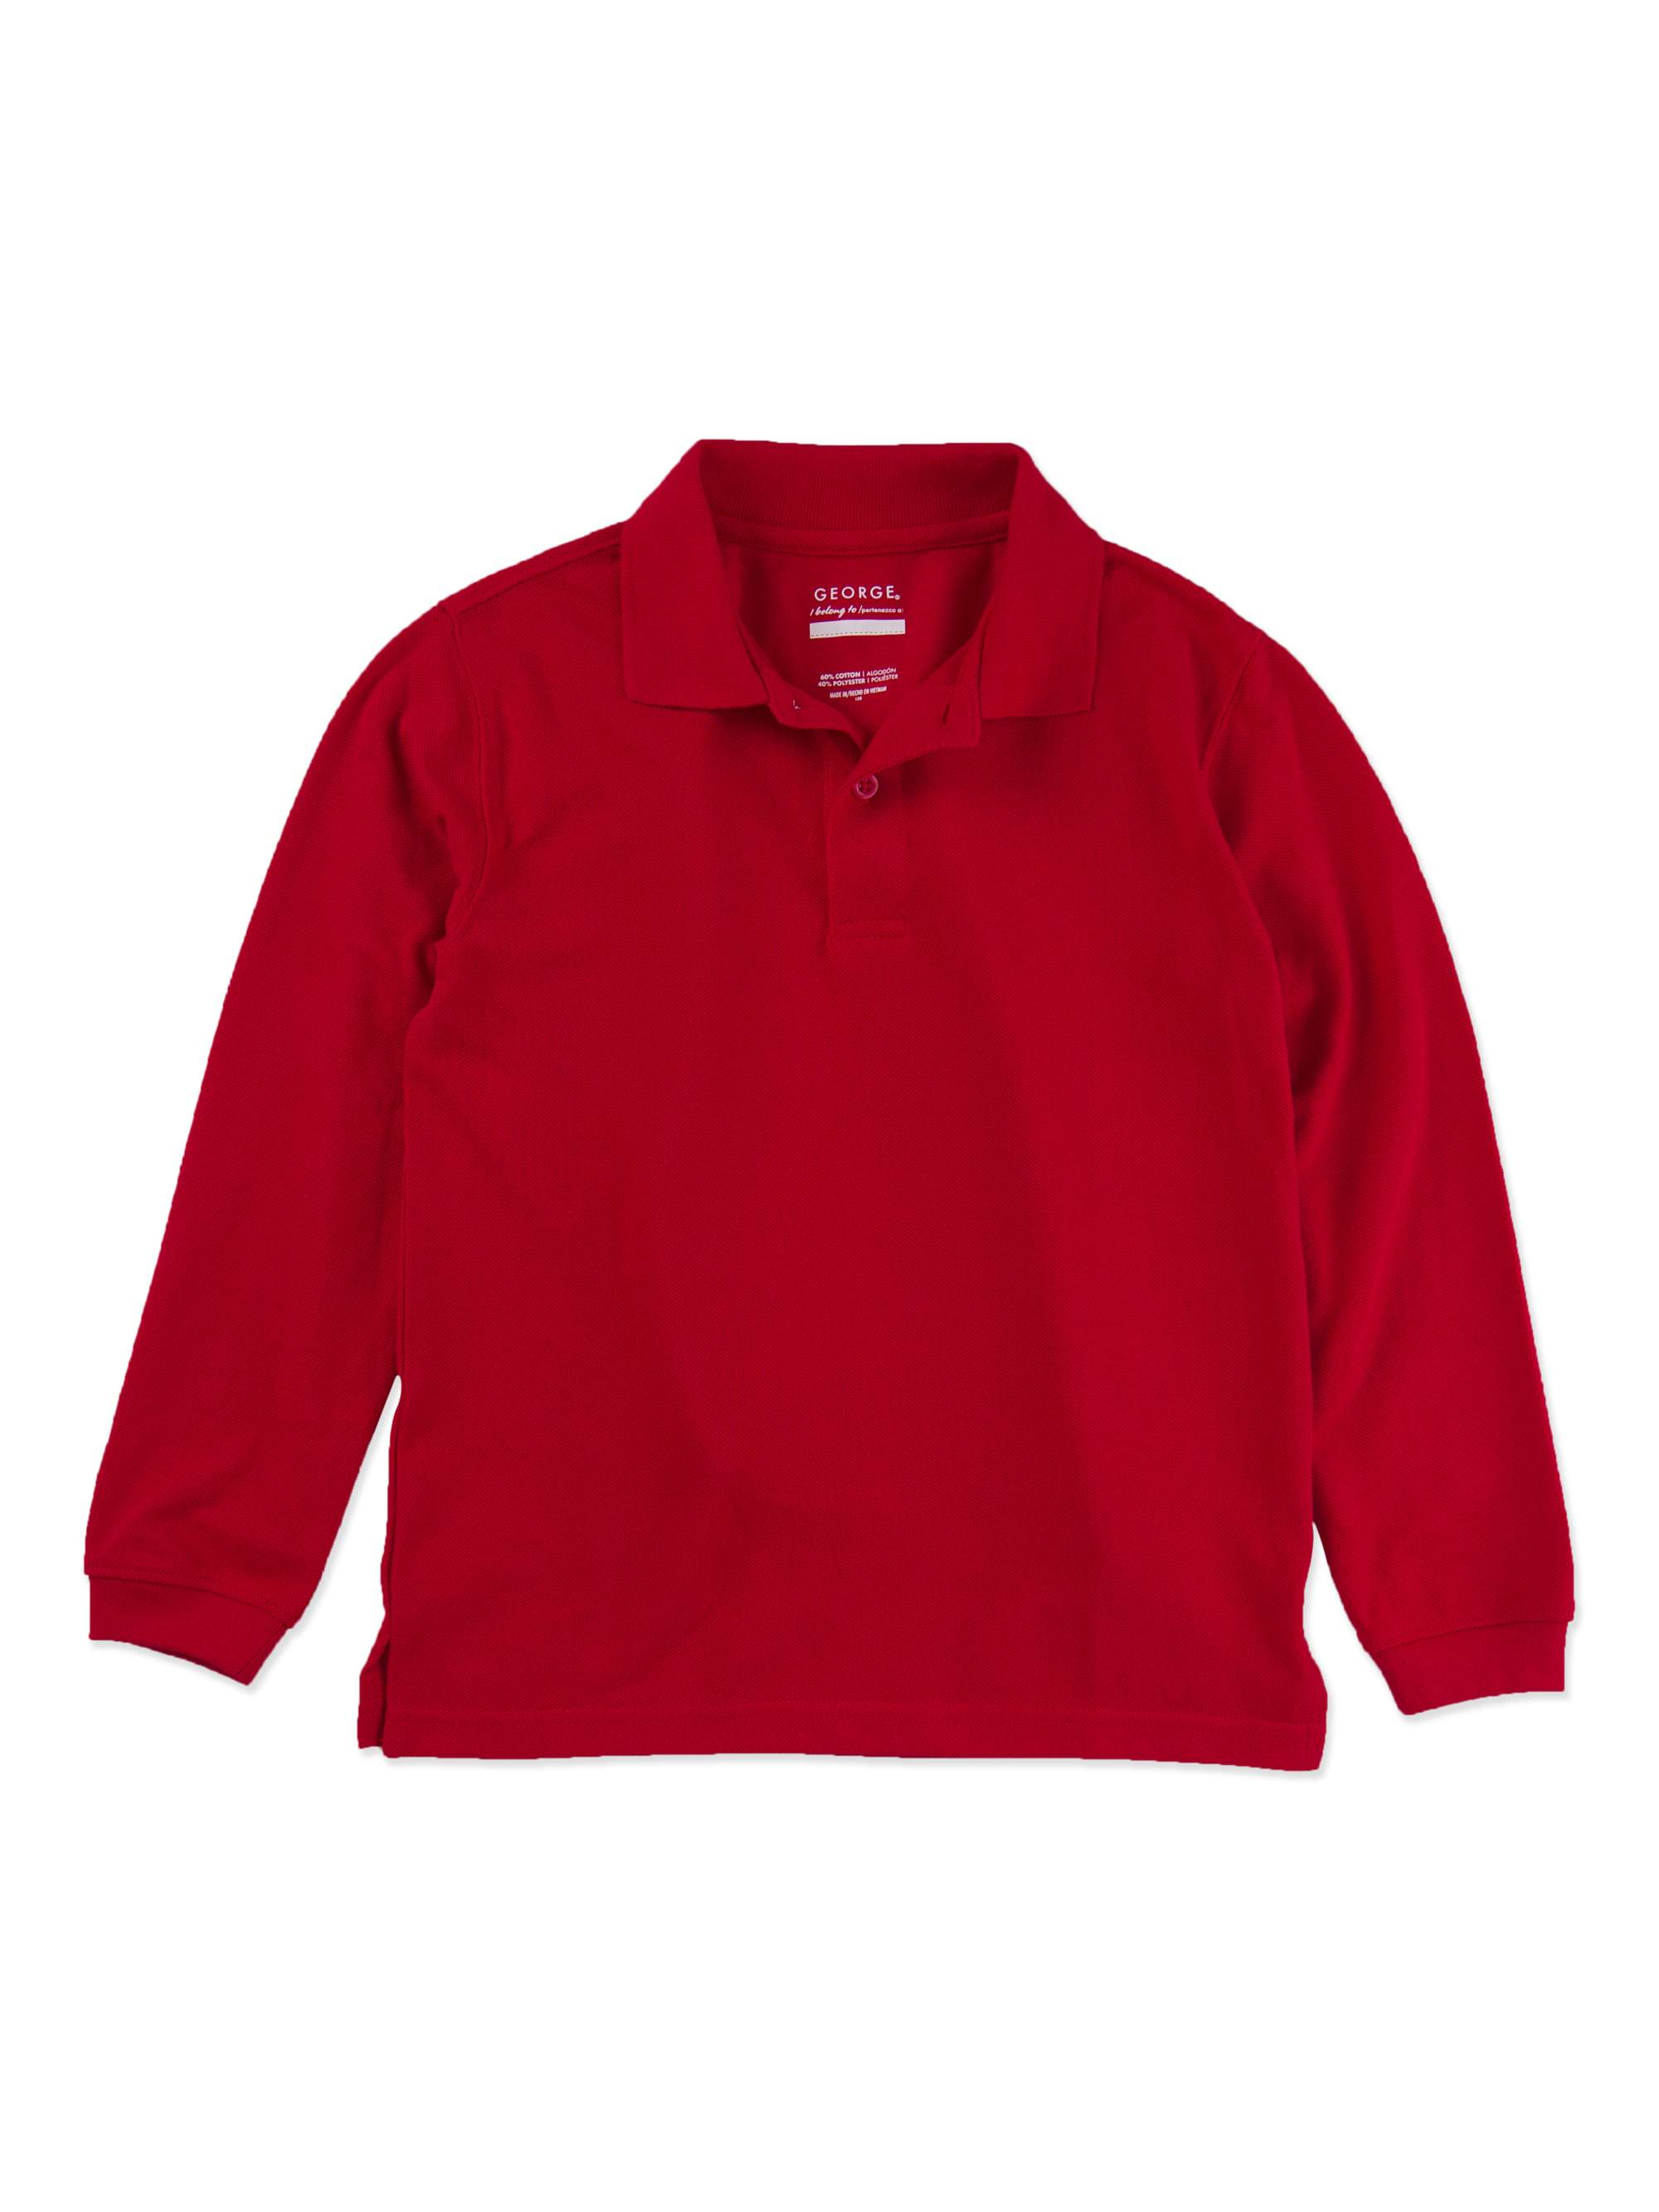 Boys School Uniforms Husky Size Long Sleeve Polo Shirt